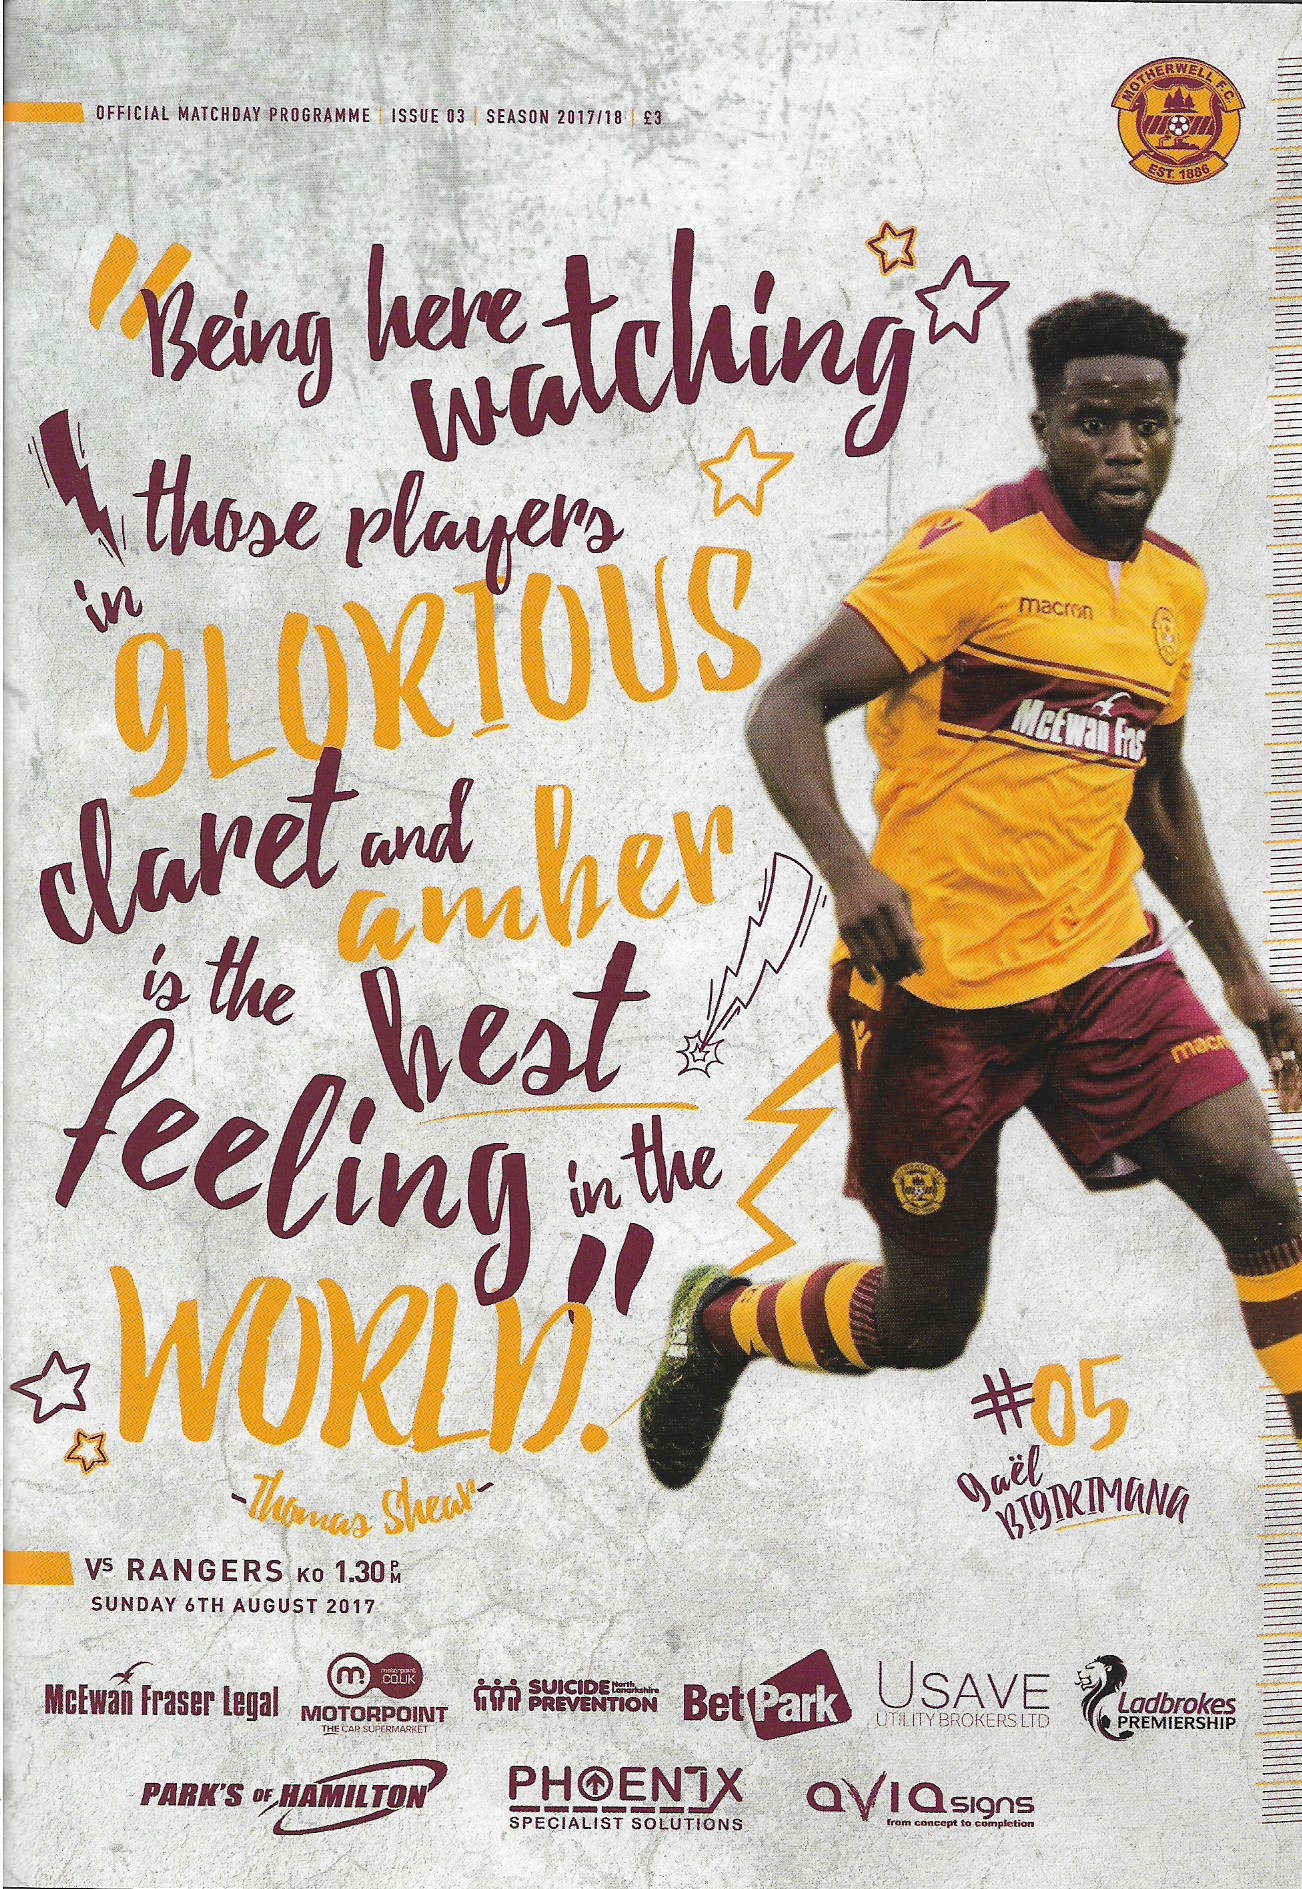 2017/18 Programme Cover